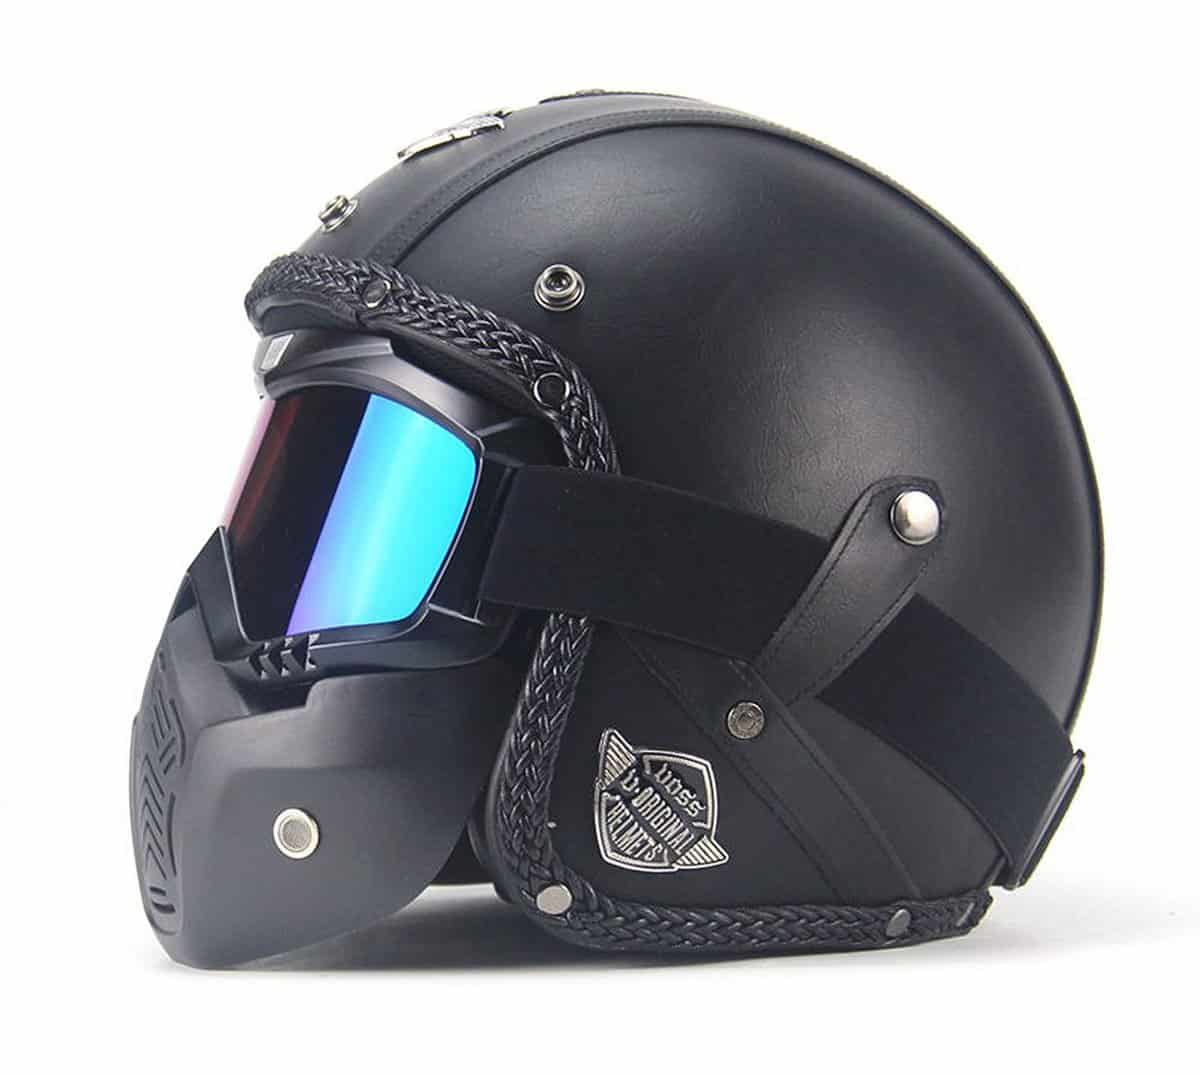 AUTOPDR Open Face Vintage Motorcycle Helmet with Goggles Mask